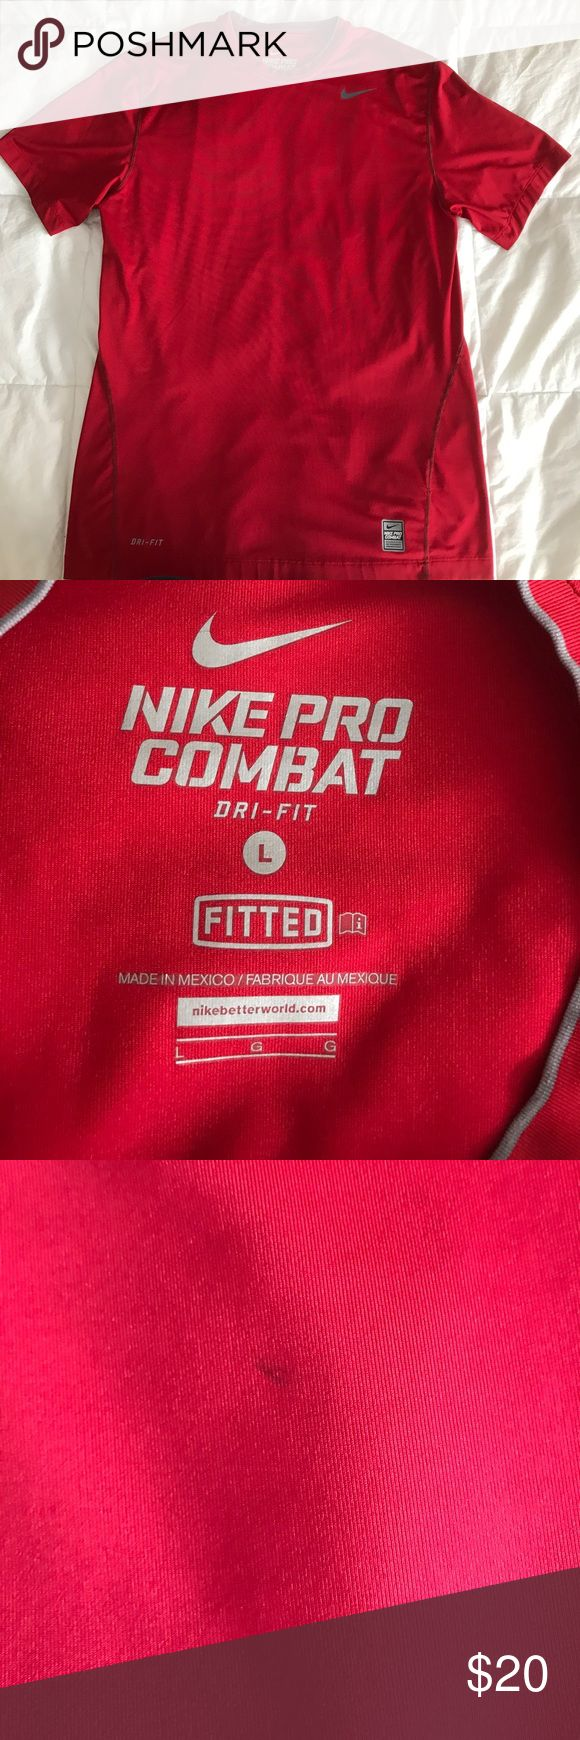 Men's Nike Pro Combat Dri-Fit Short Sleeve Shirt Men's Nike Pro Combat Dri-Fit Short Sleeve Shirt - Small Stain on Front Towards The Bottom Nike Shirts